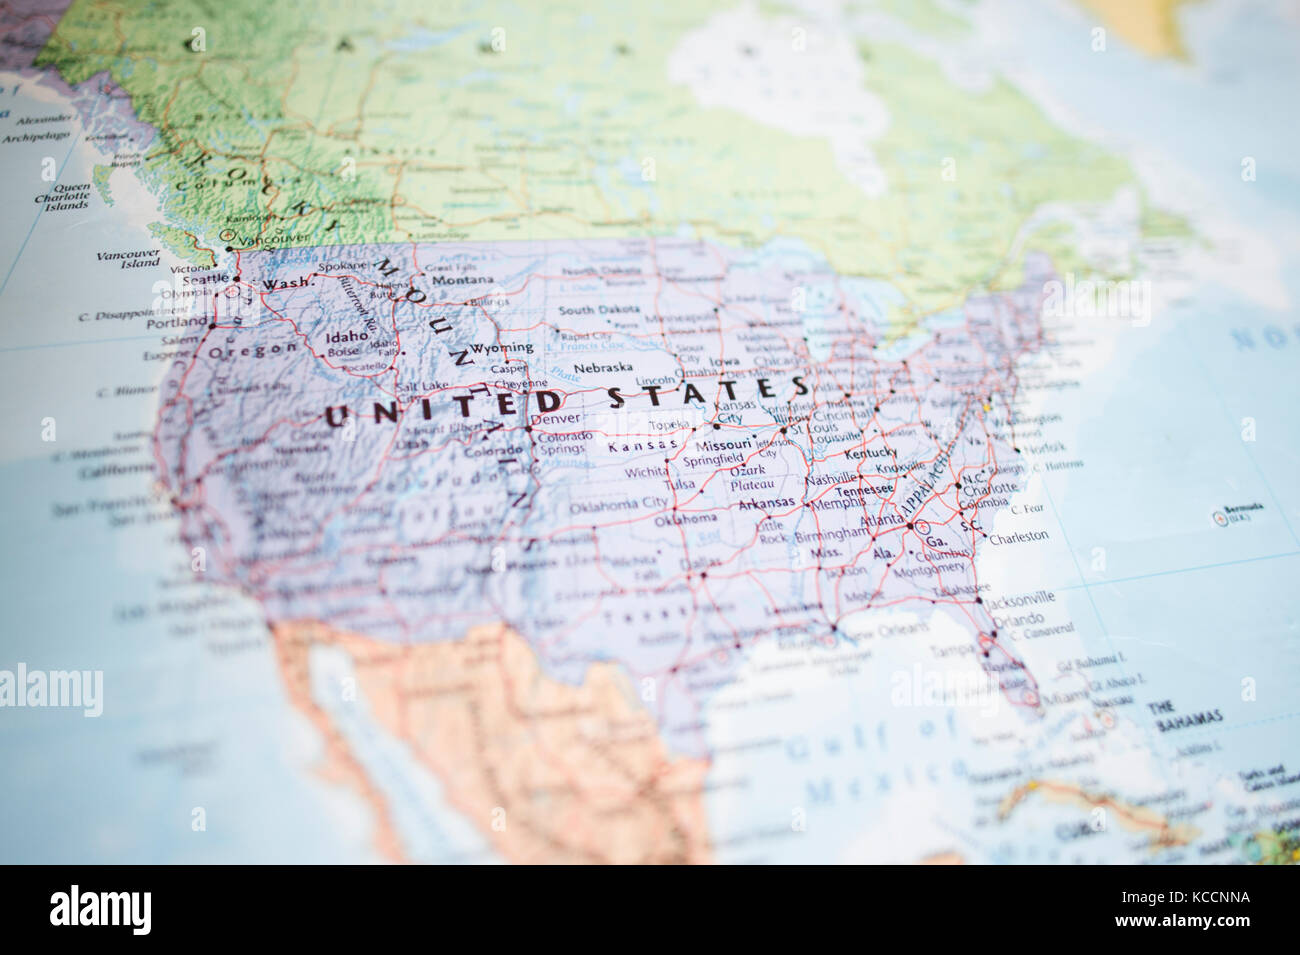 Map Of United States And Europe Stockfotos & Map Of United ...